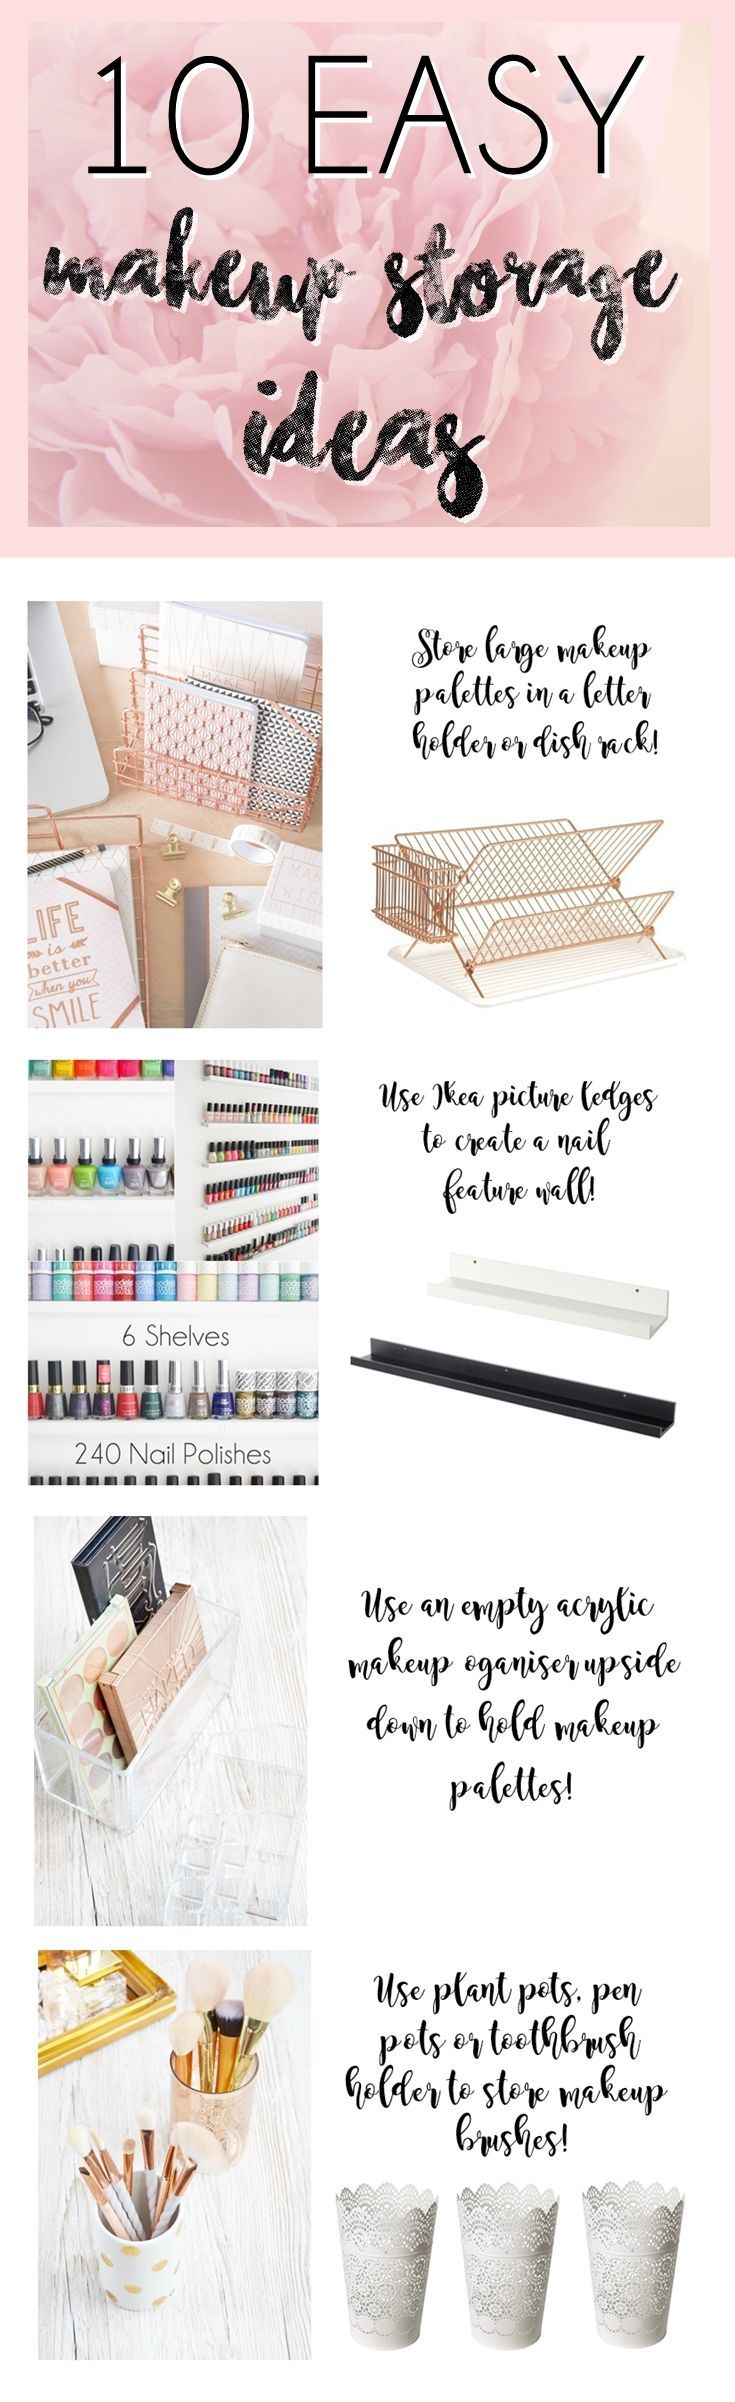 Amazing DIY makeup storage hacks to try out! From makeup palette storage to an easy, yes easy, DIY nail polish wall!